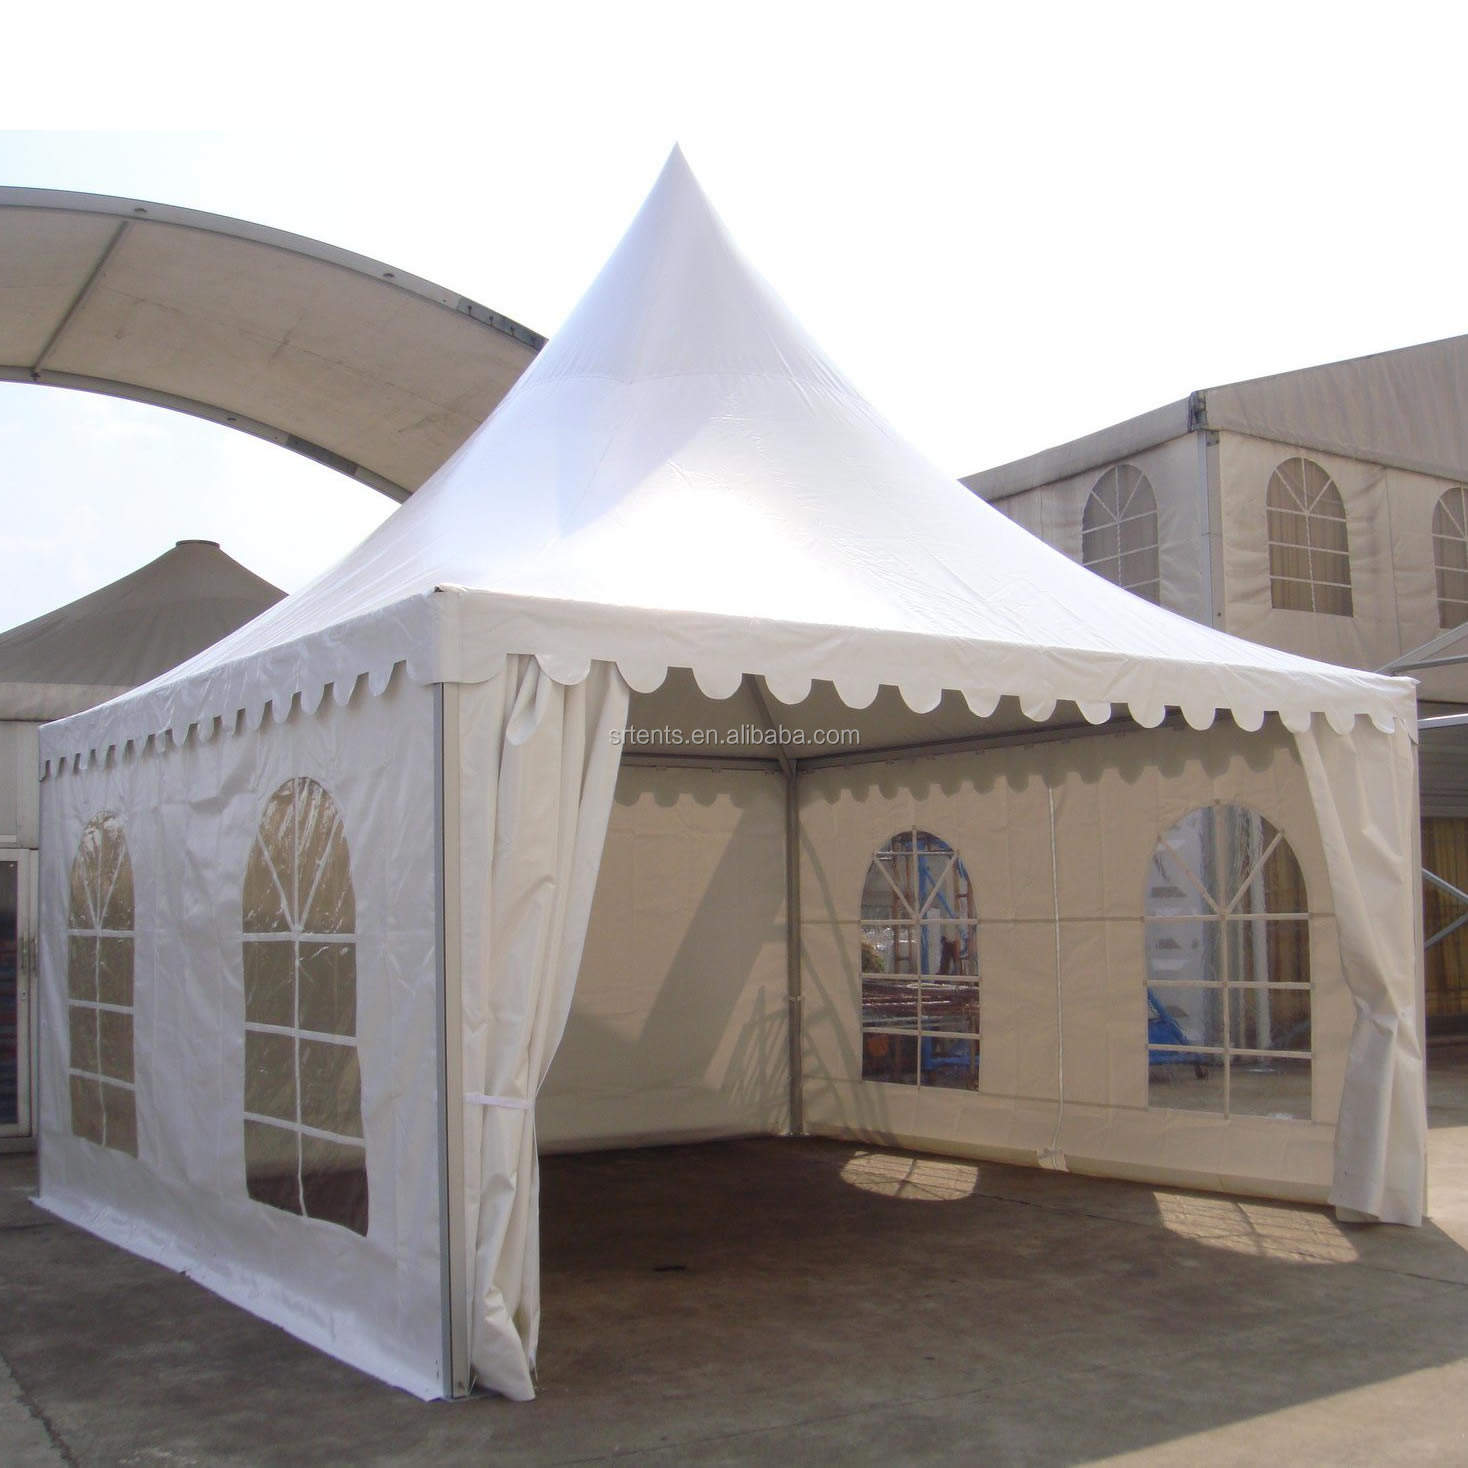 20'x20' Hot sale outdoor high peak marquee aluminum frame tent for party event